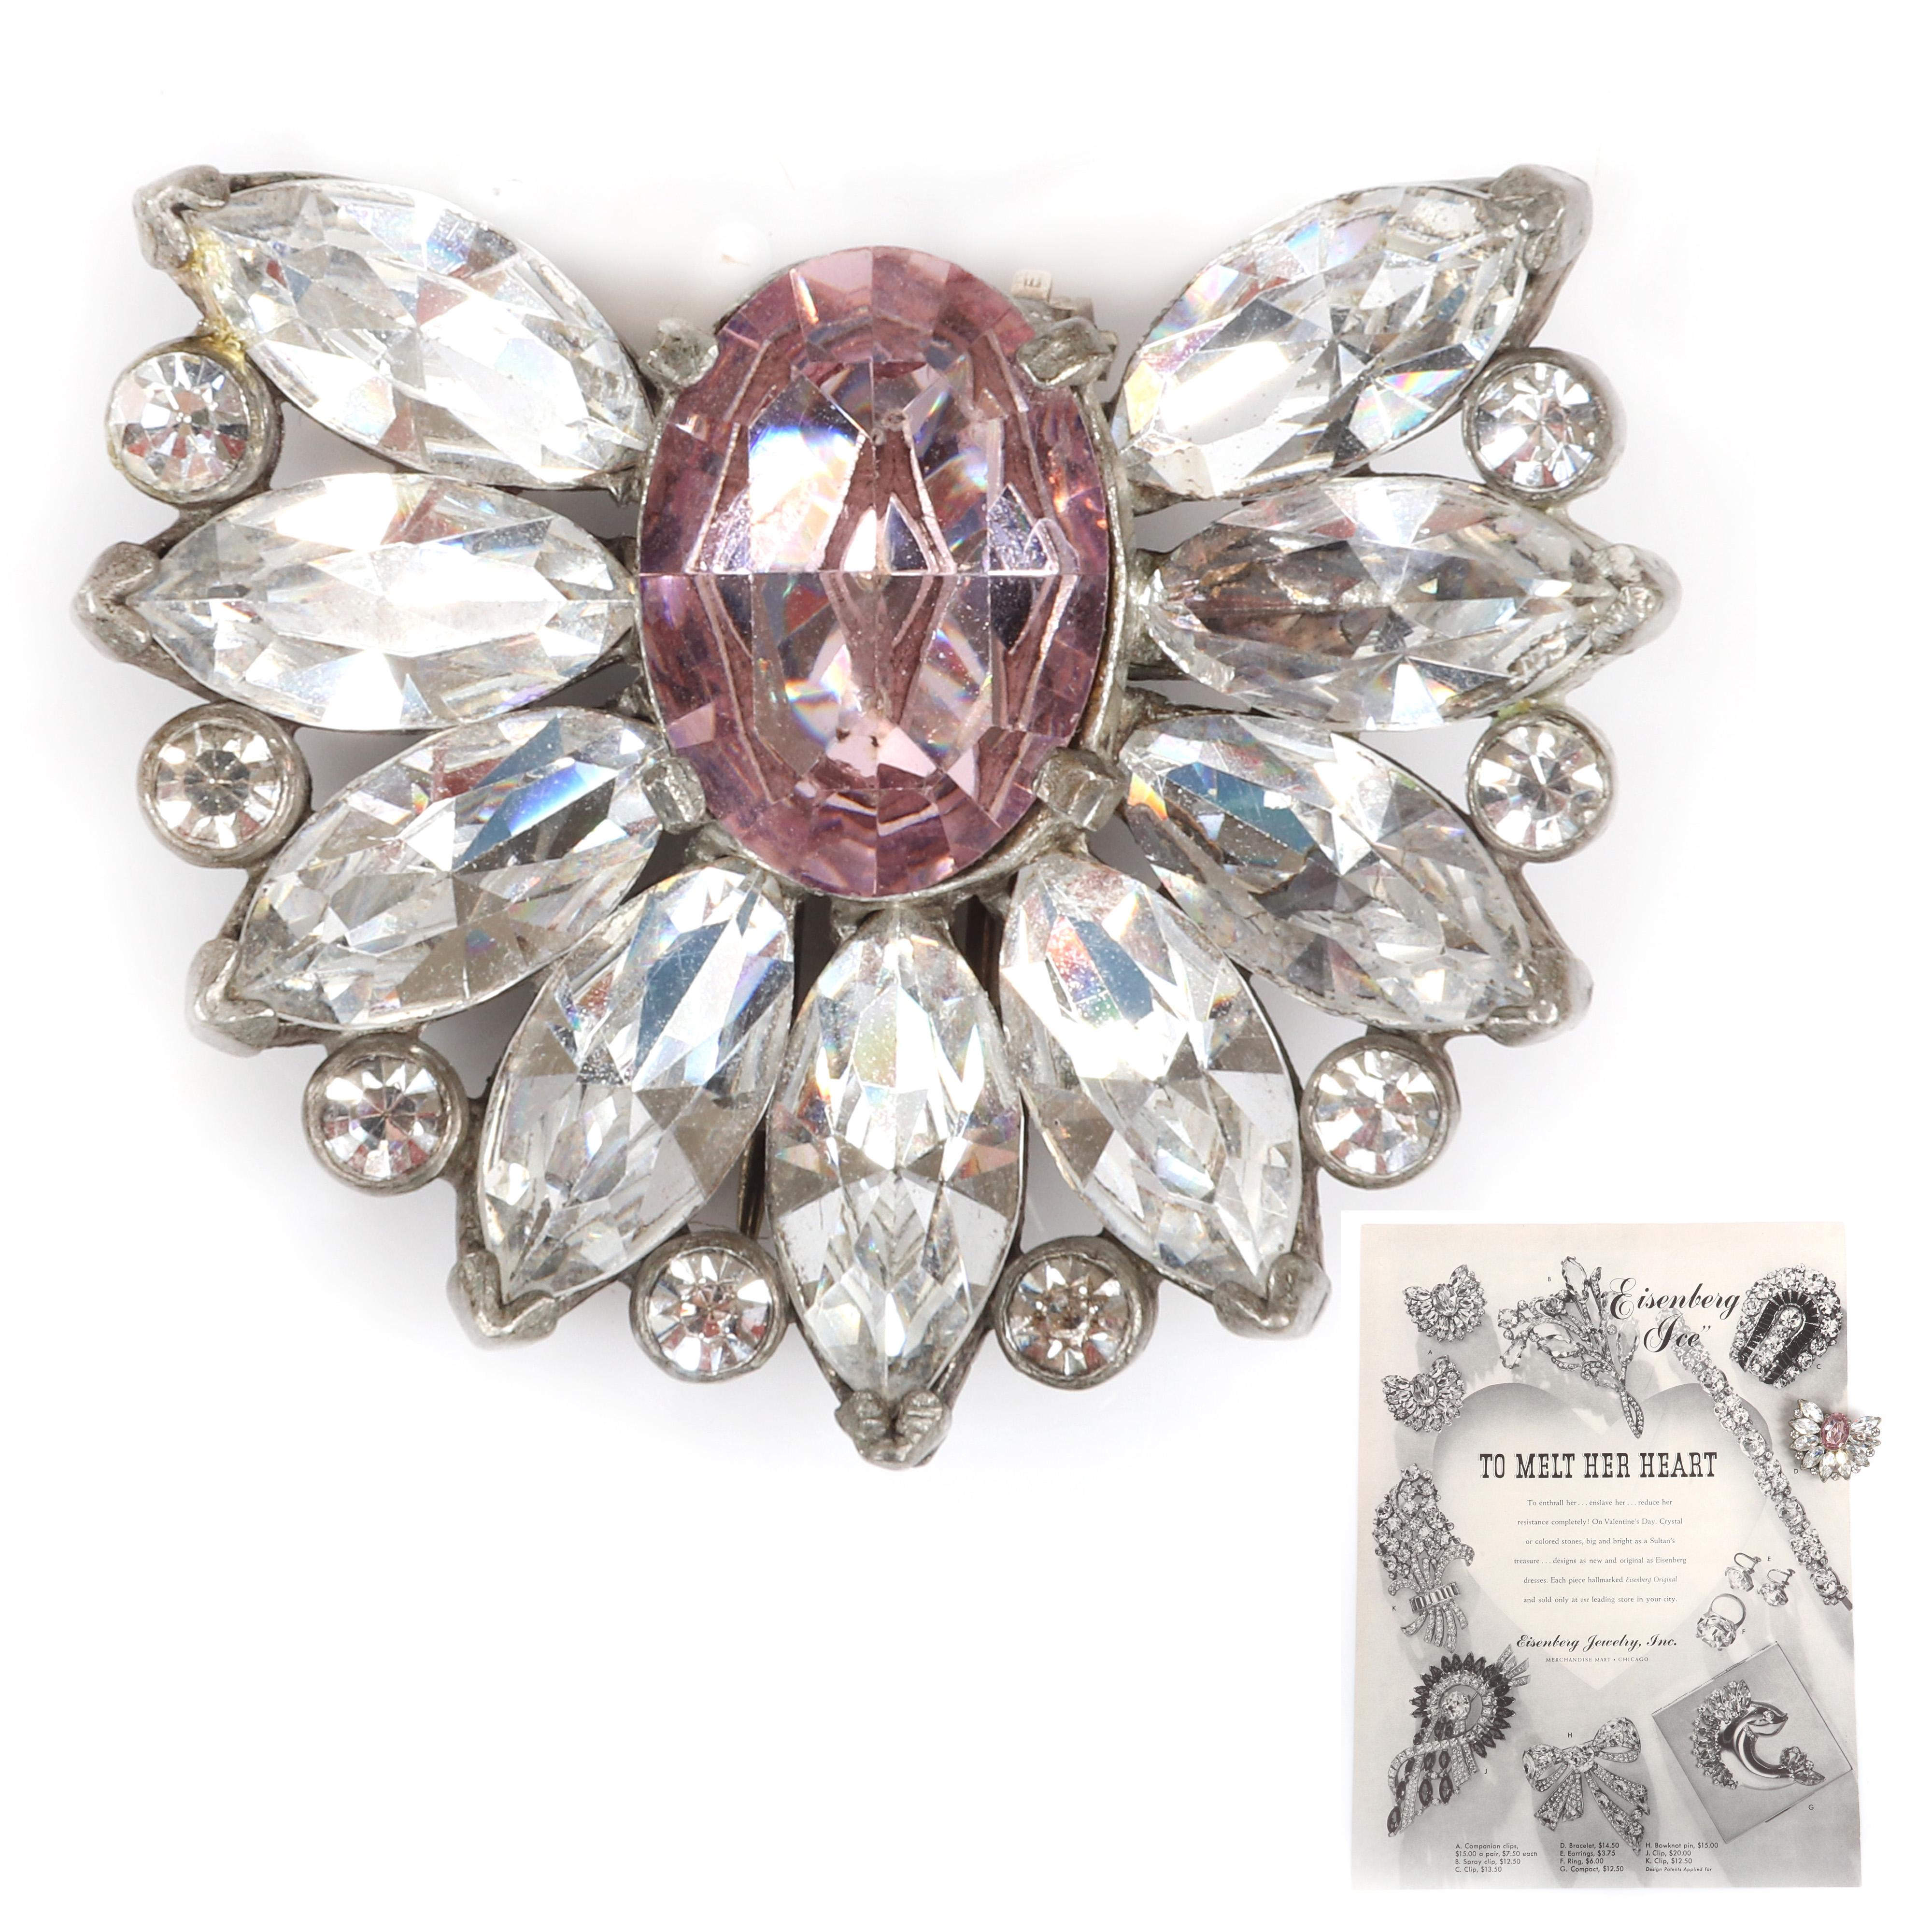 """Eisenberg Original floral fan dress clip with large central amethyst crystal surrounded by clear marquise & bezel-set rhinestones, c. 1942. Includes original 1946 Vogue advertising. 1 12"""" x 1 3/4"""""""